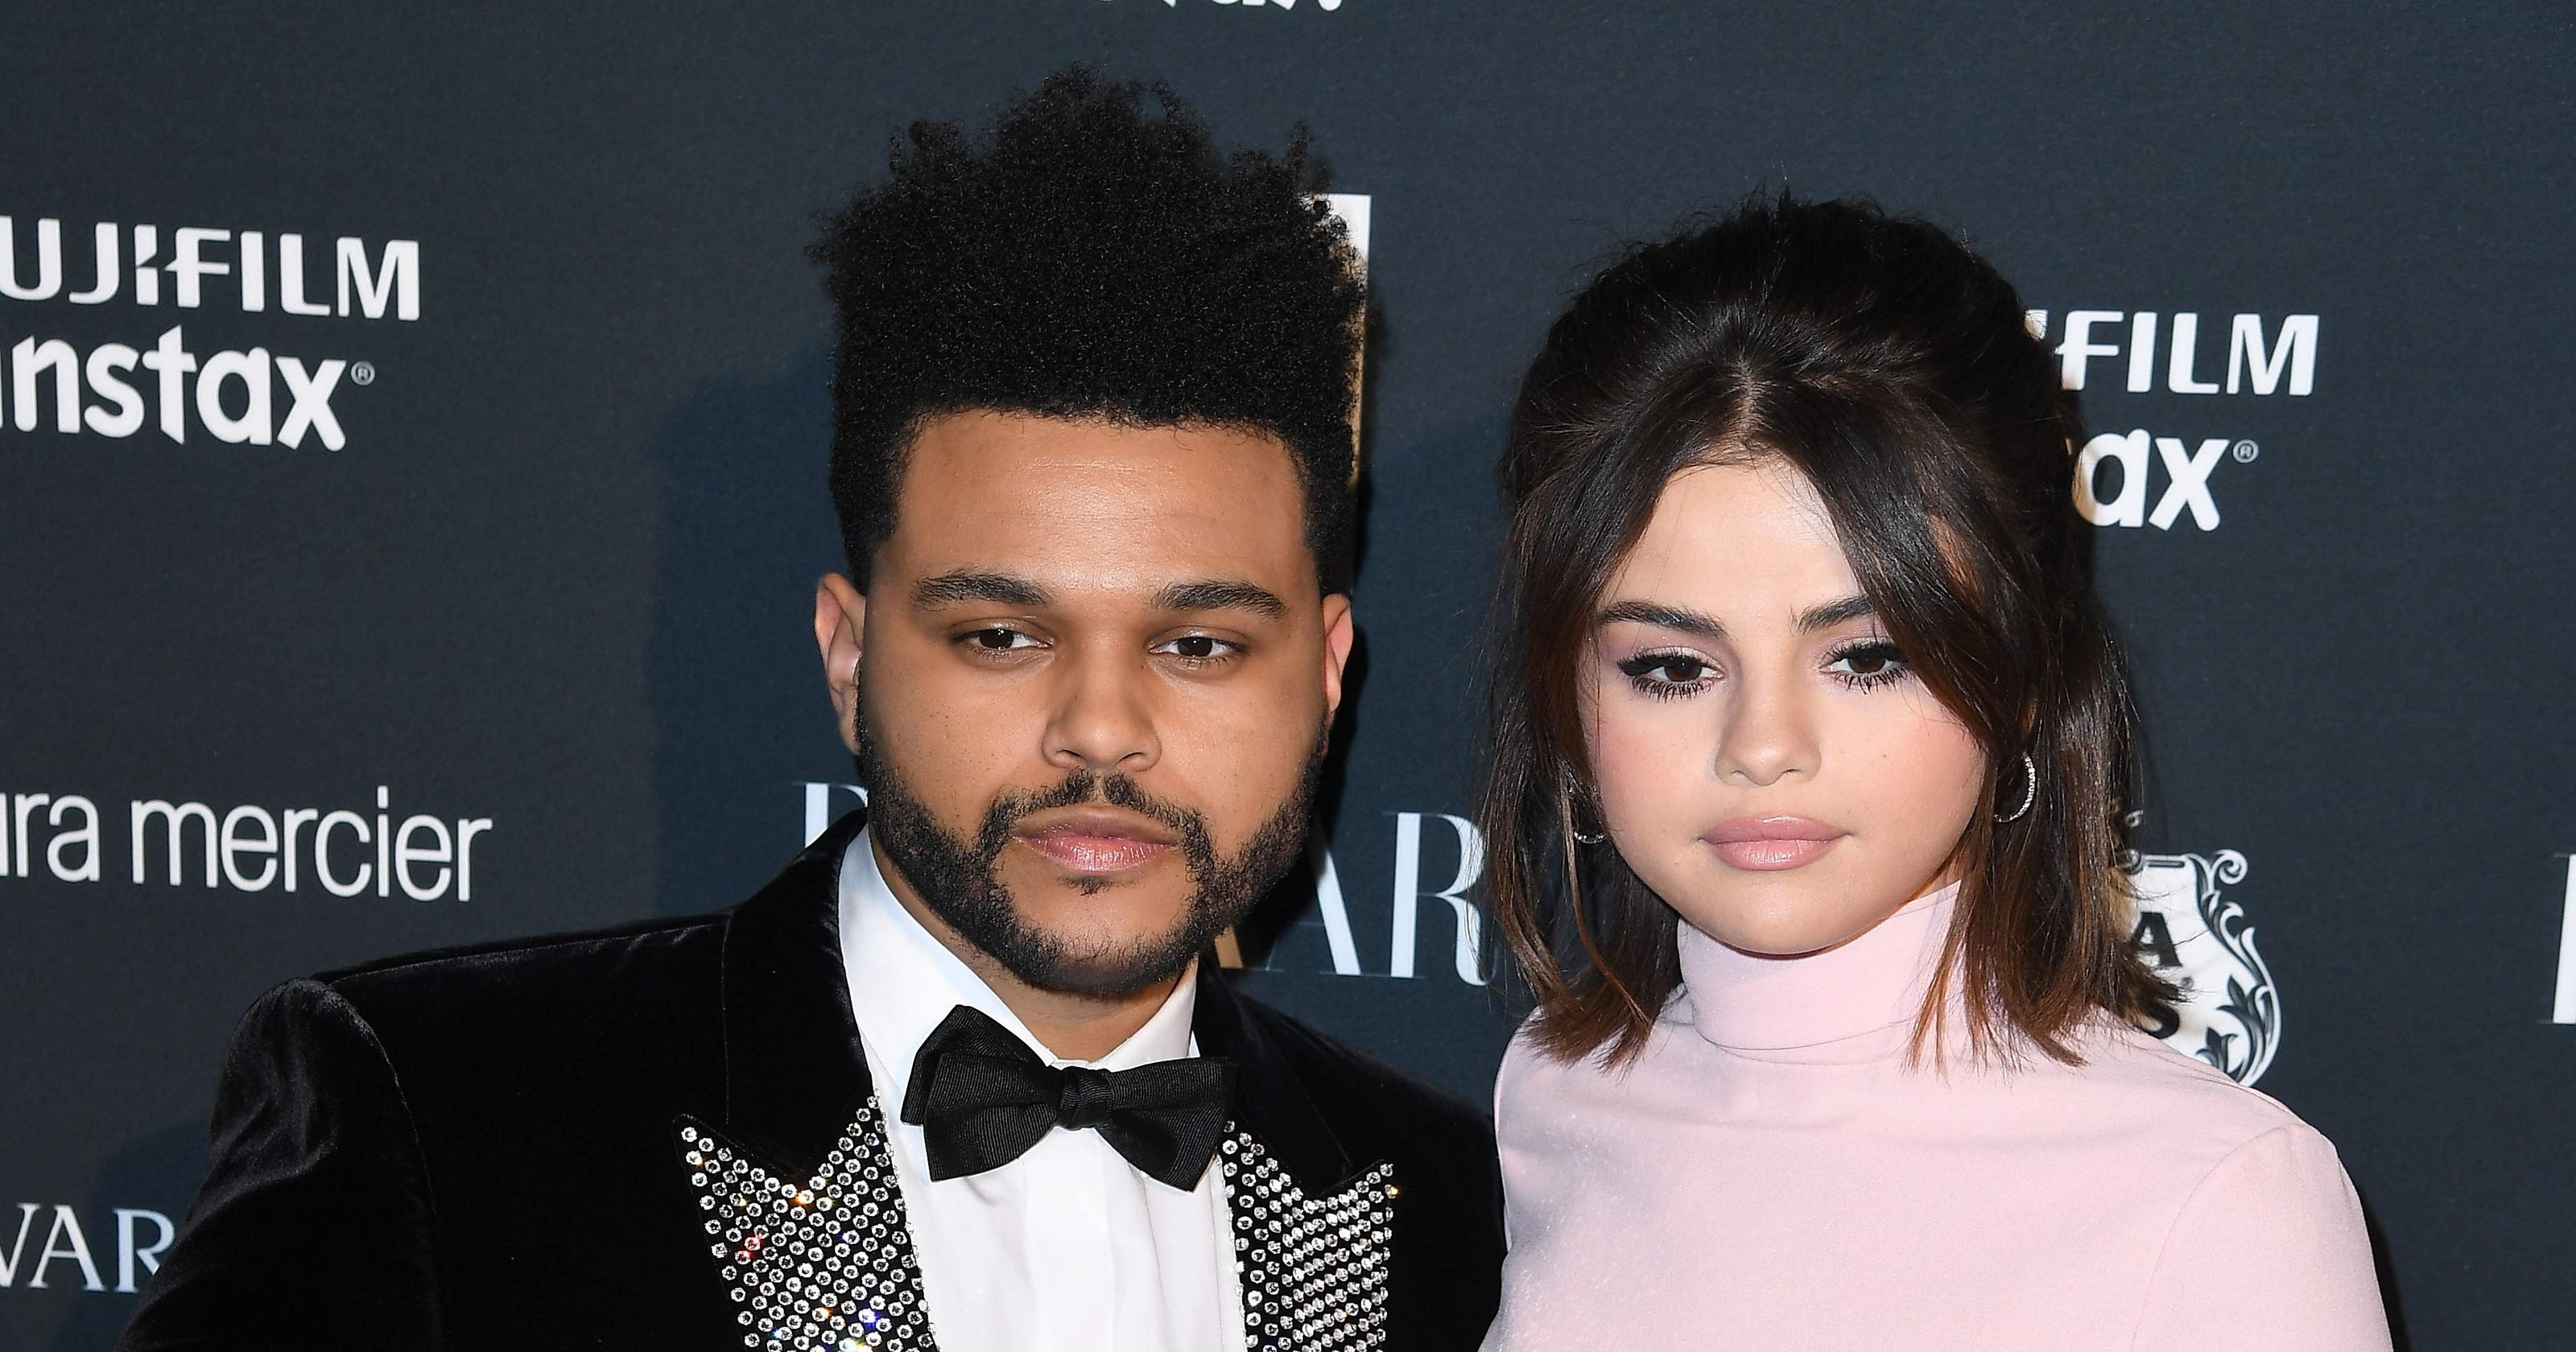 da5b6bc6 Is The Weeknd's 'Call Out My Name' about Selena Gomez? Twitter: Yes